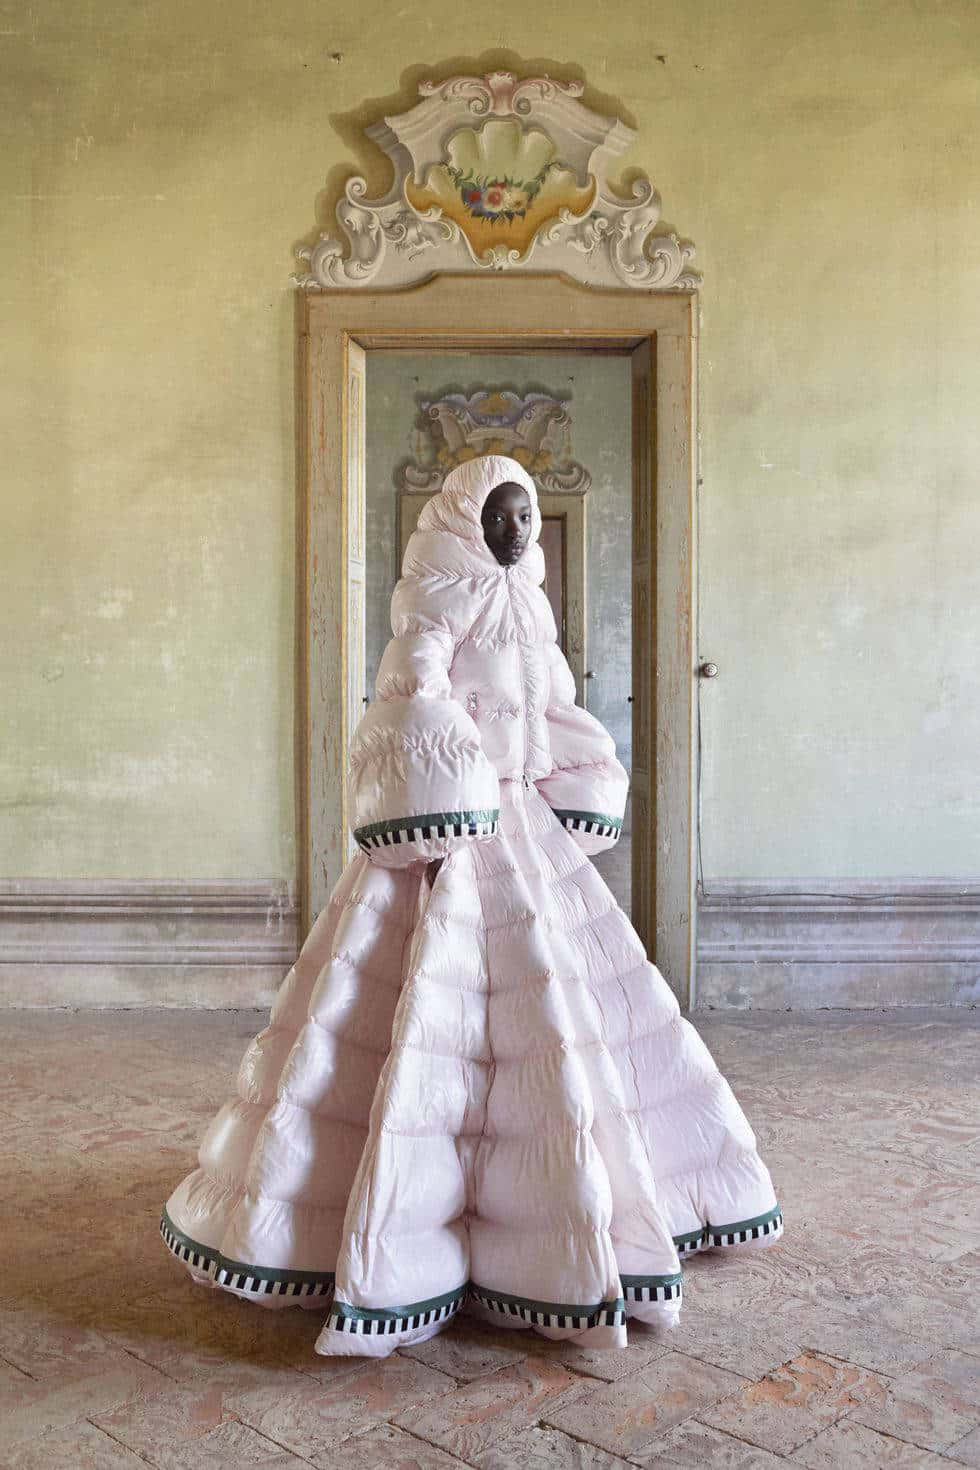 Moncler Genius ski-like evening gowns